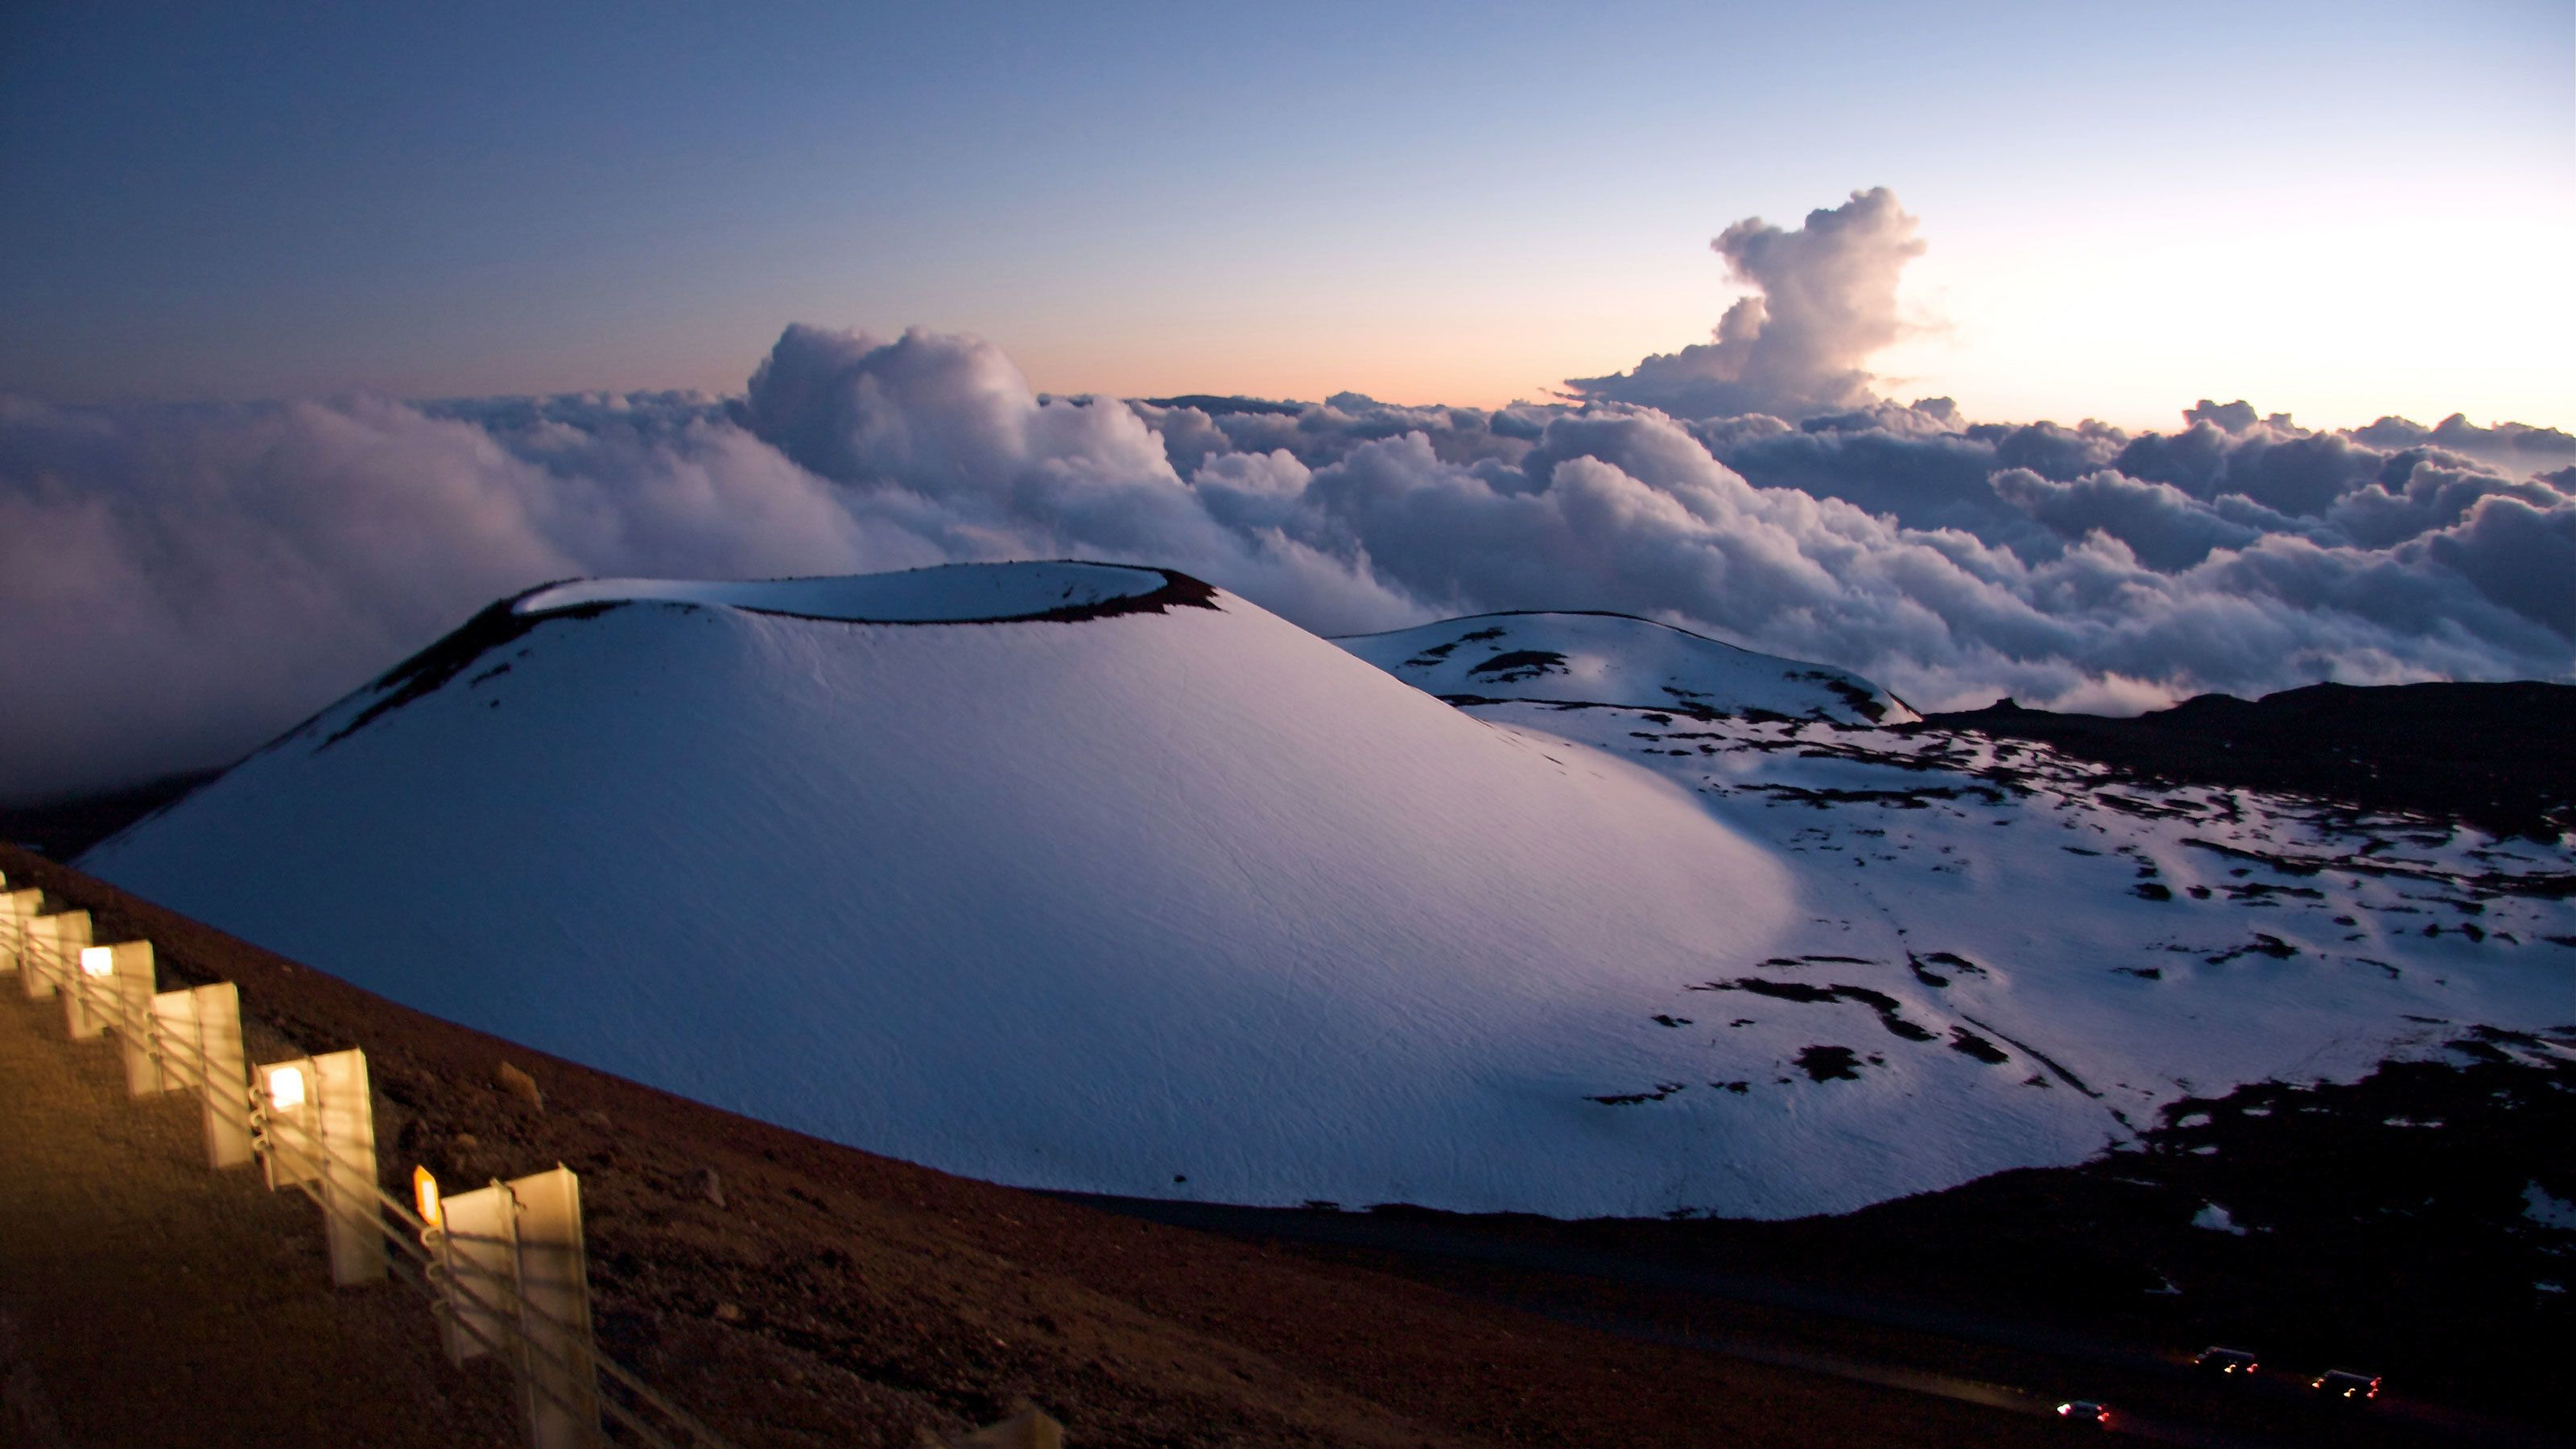 Mauna Kea Summit, Kailua-Kona, Hawaii, United States of America